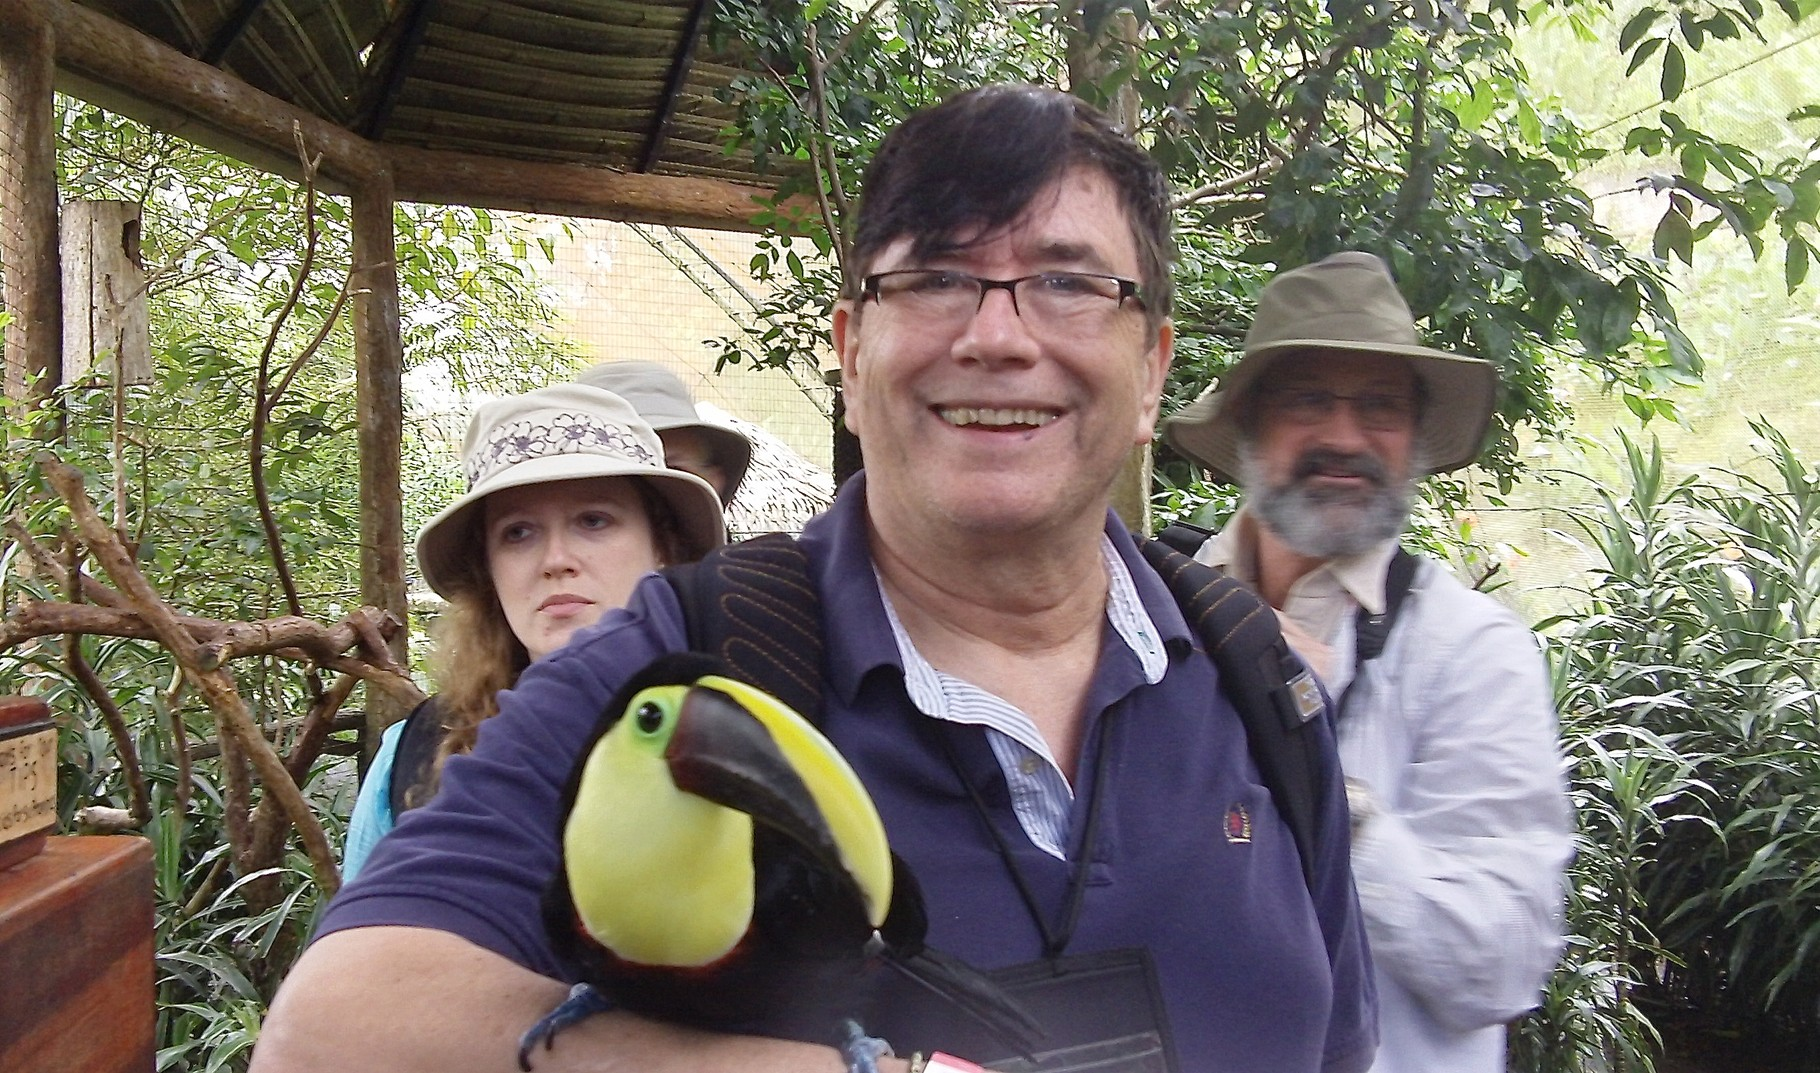 John Wagner with toucan, Costa Rica Feb. 2016